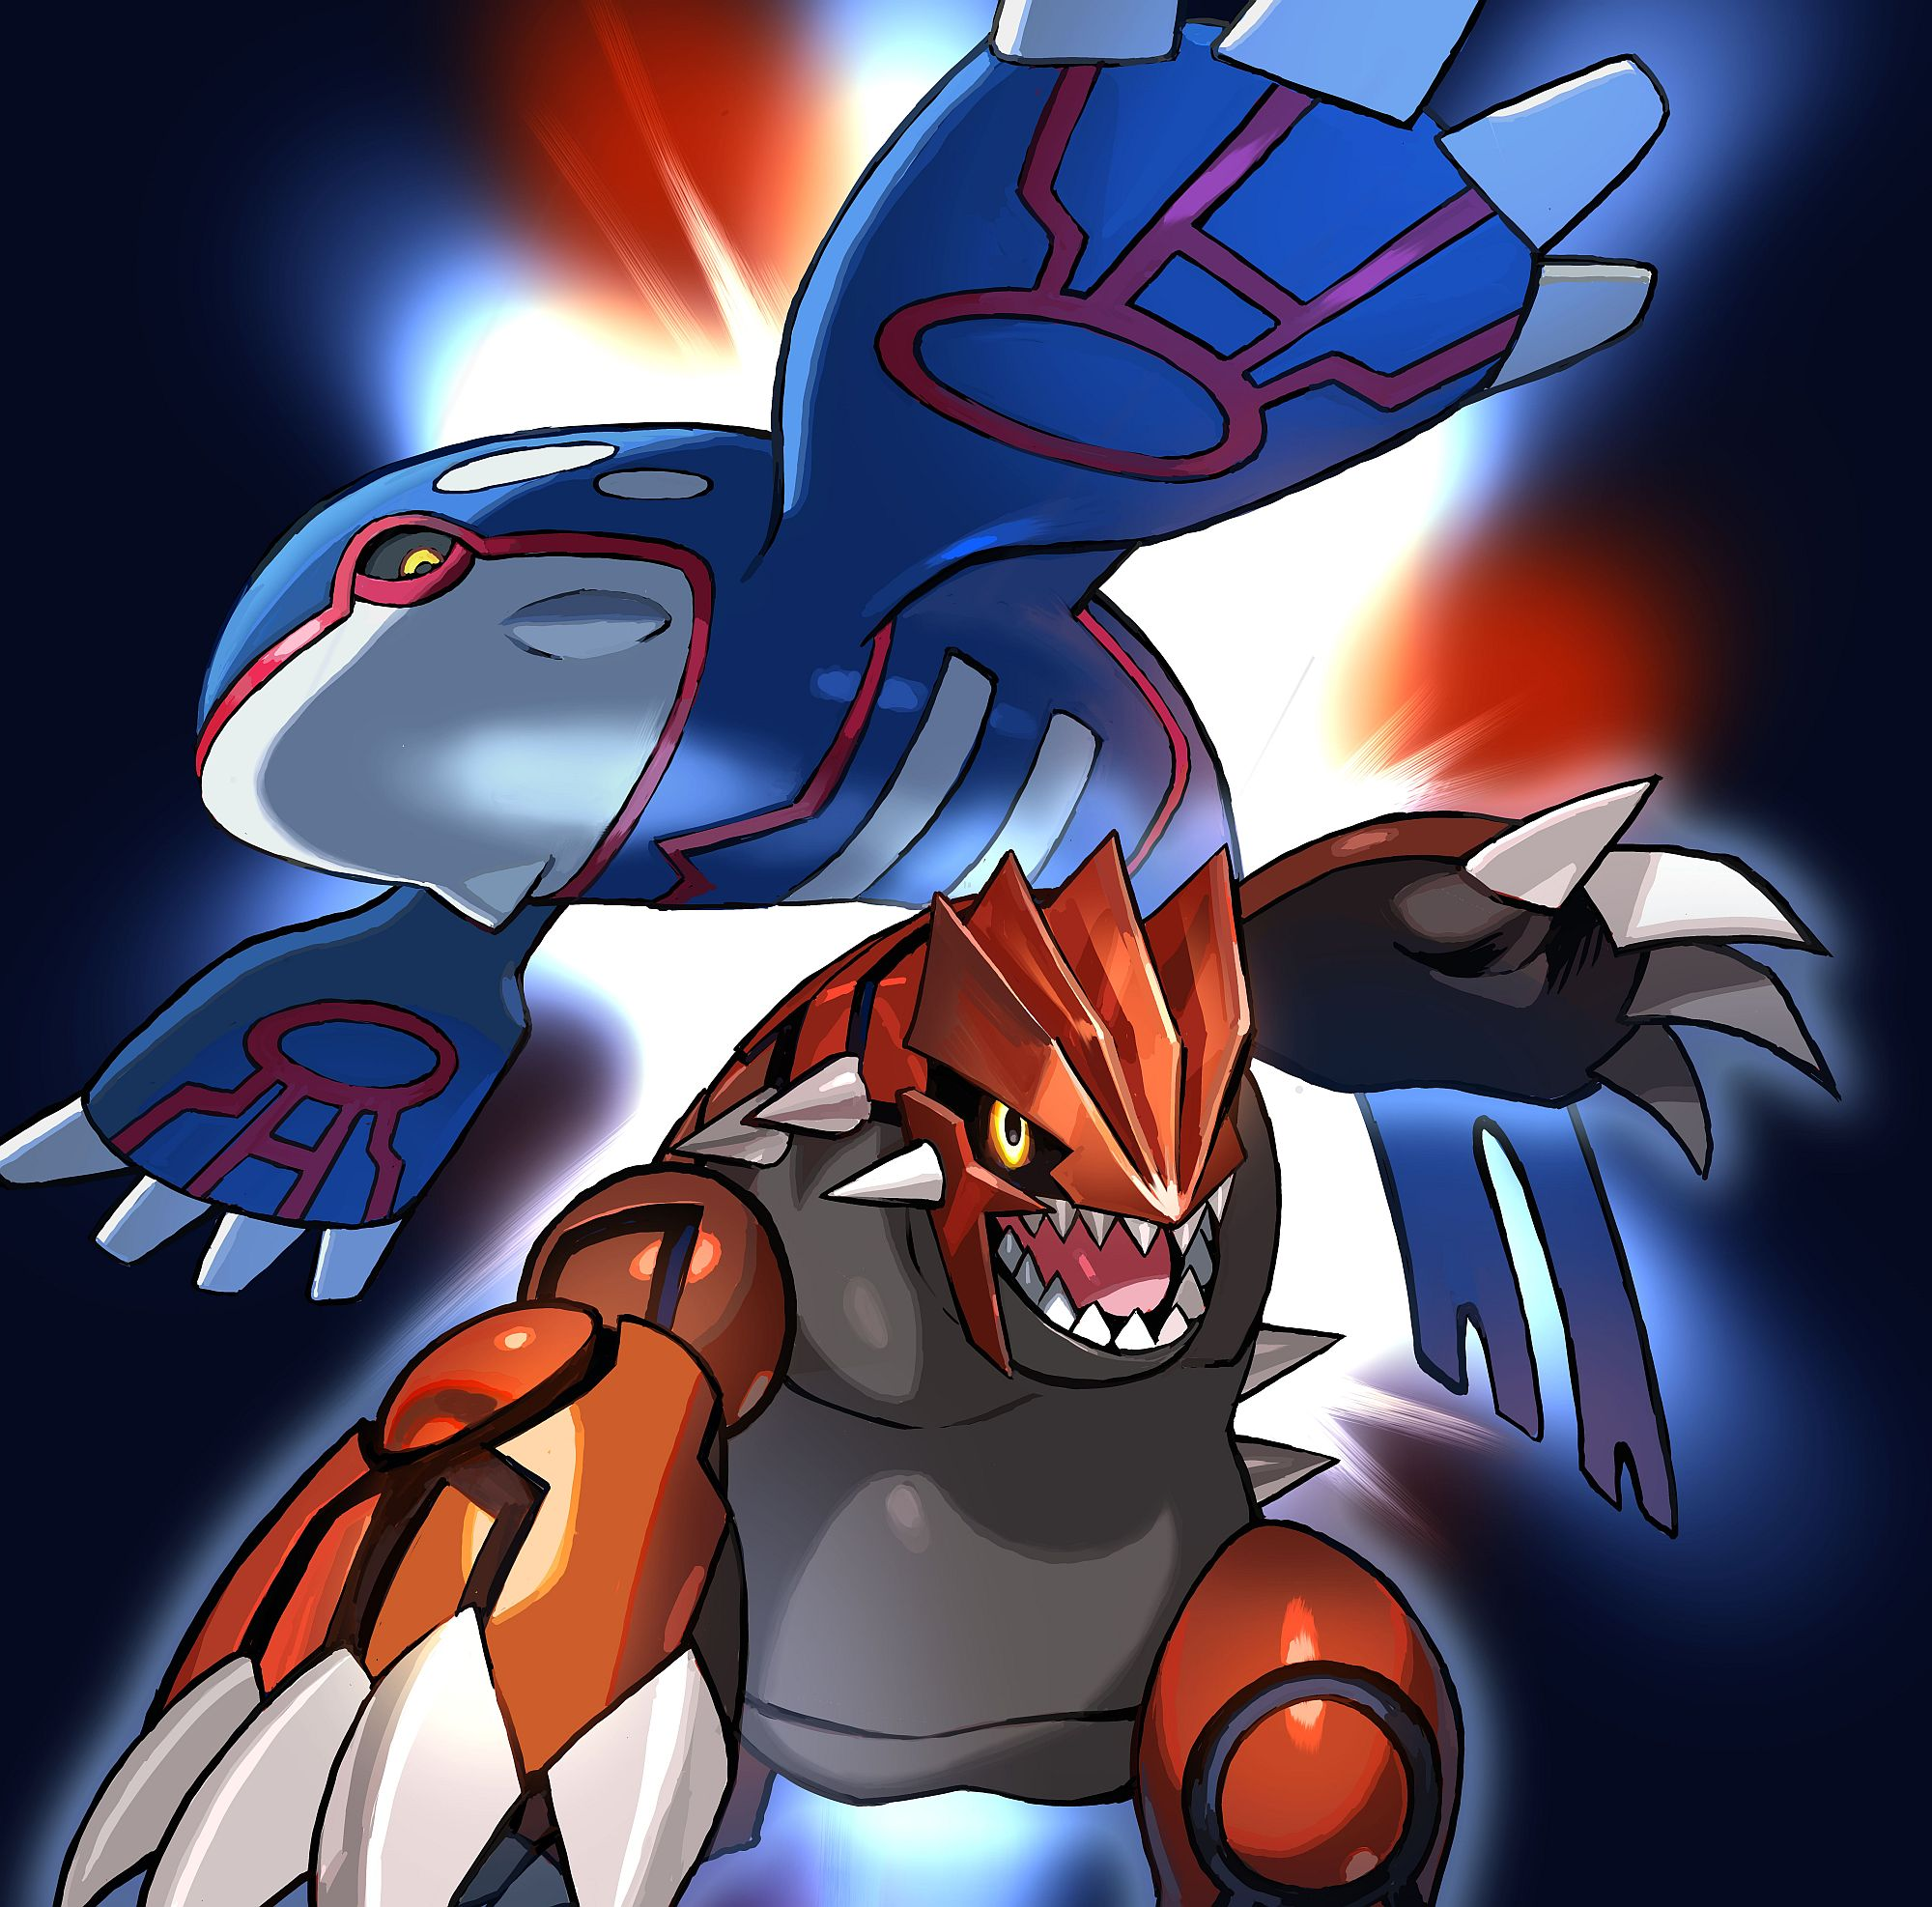 Legendary Pokemon Kyogre and Groudon now available for